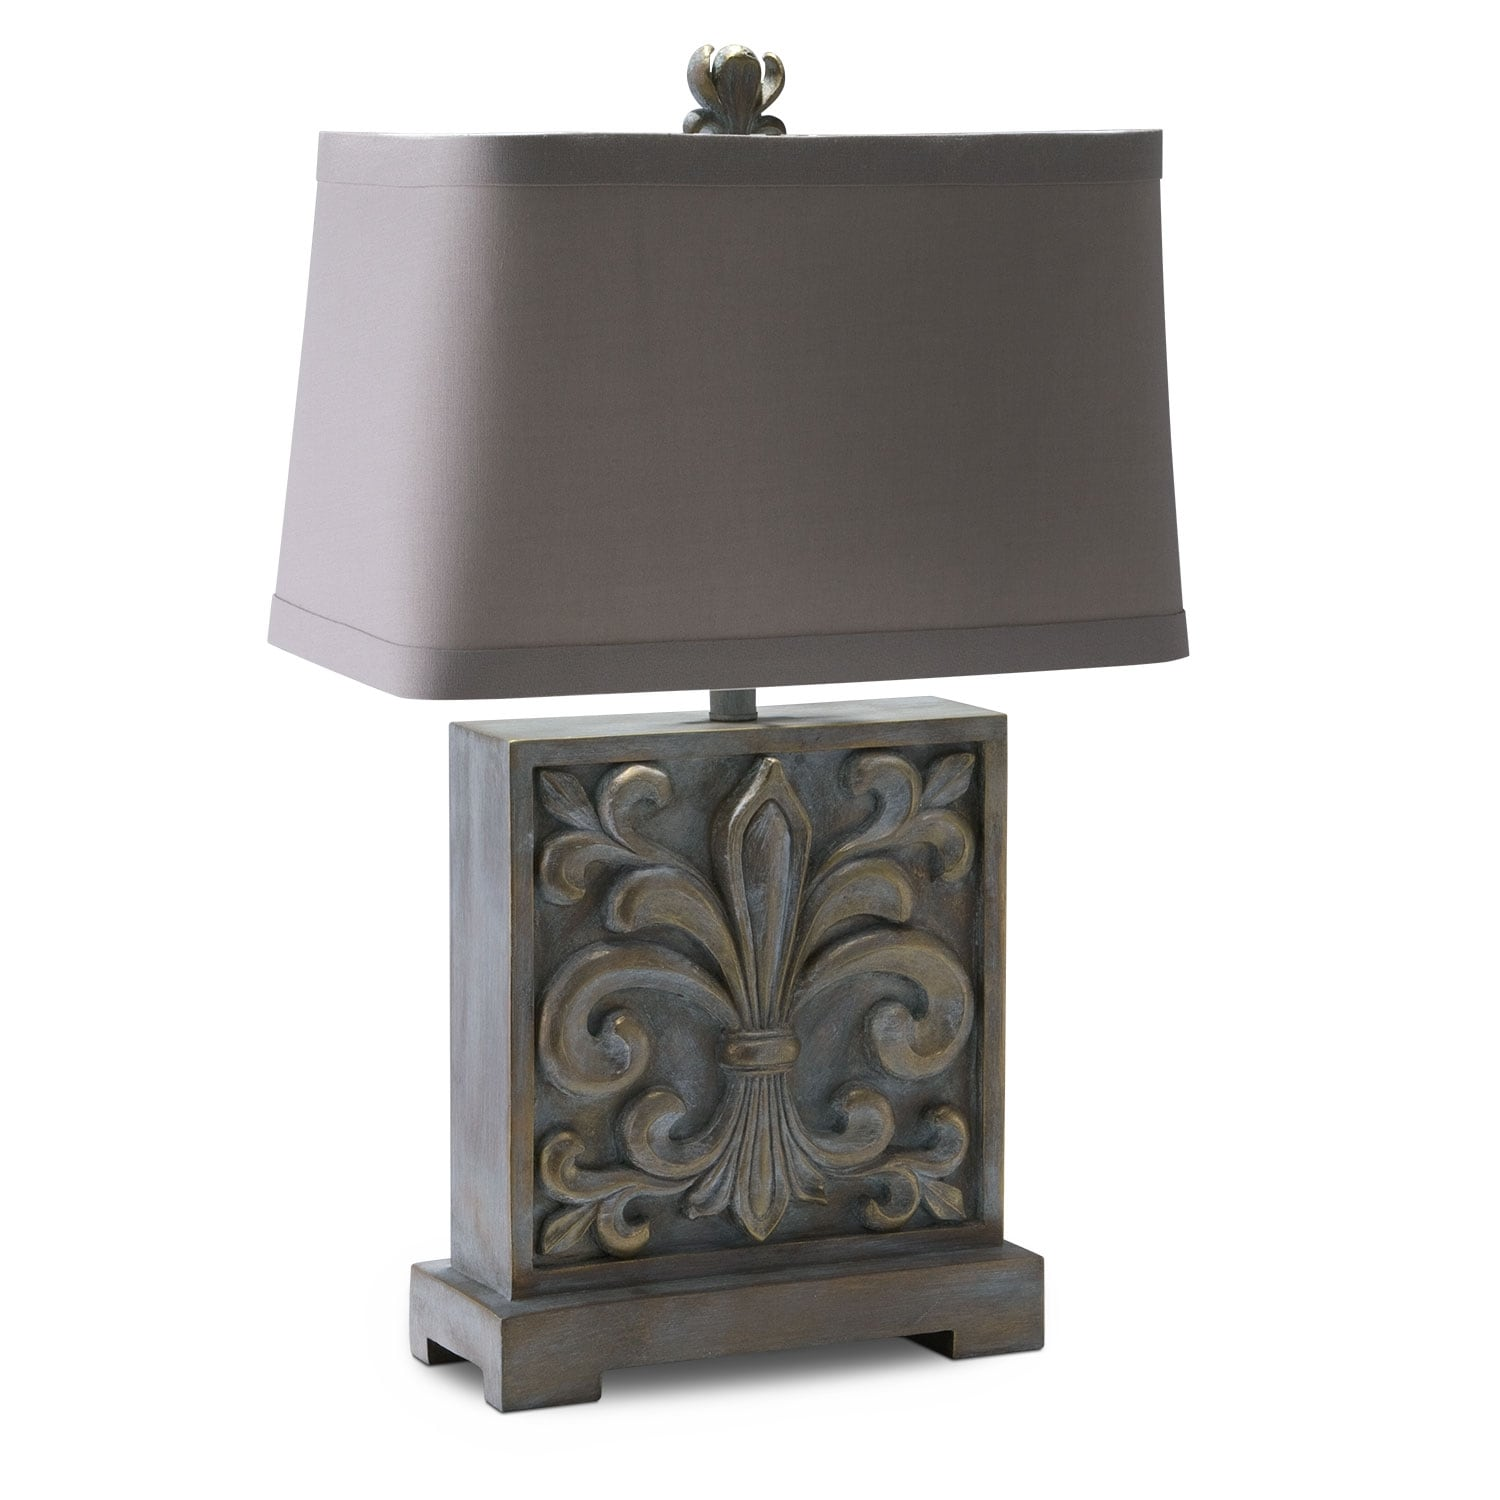 Home Accessories - Fleur de Lis Table Lamp